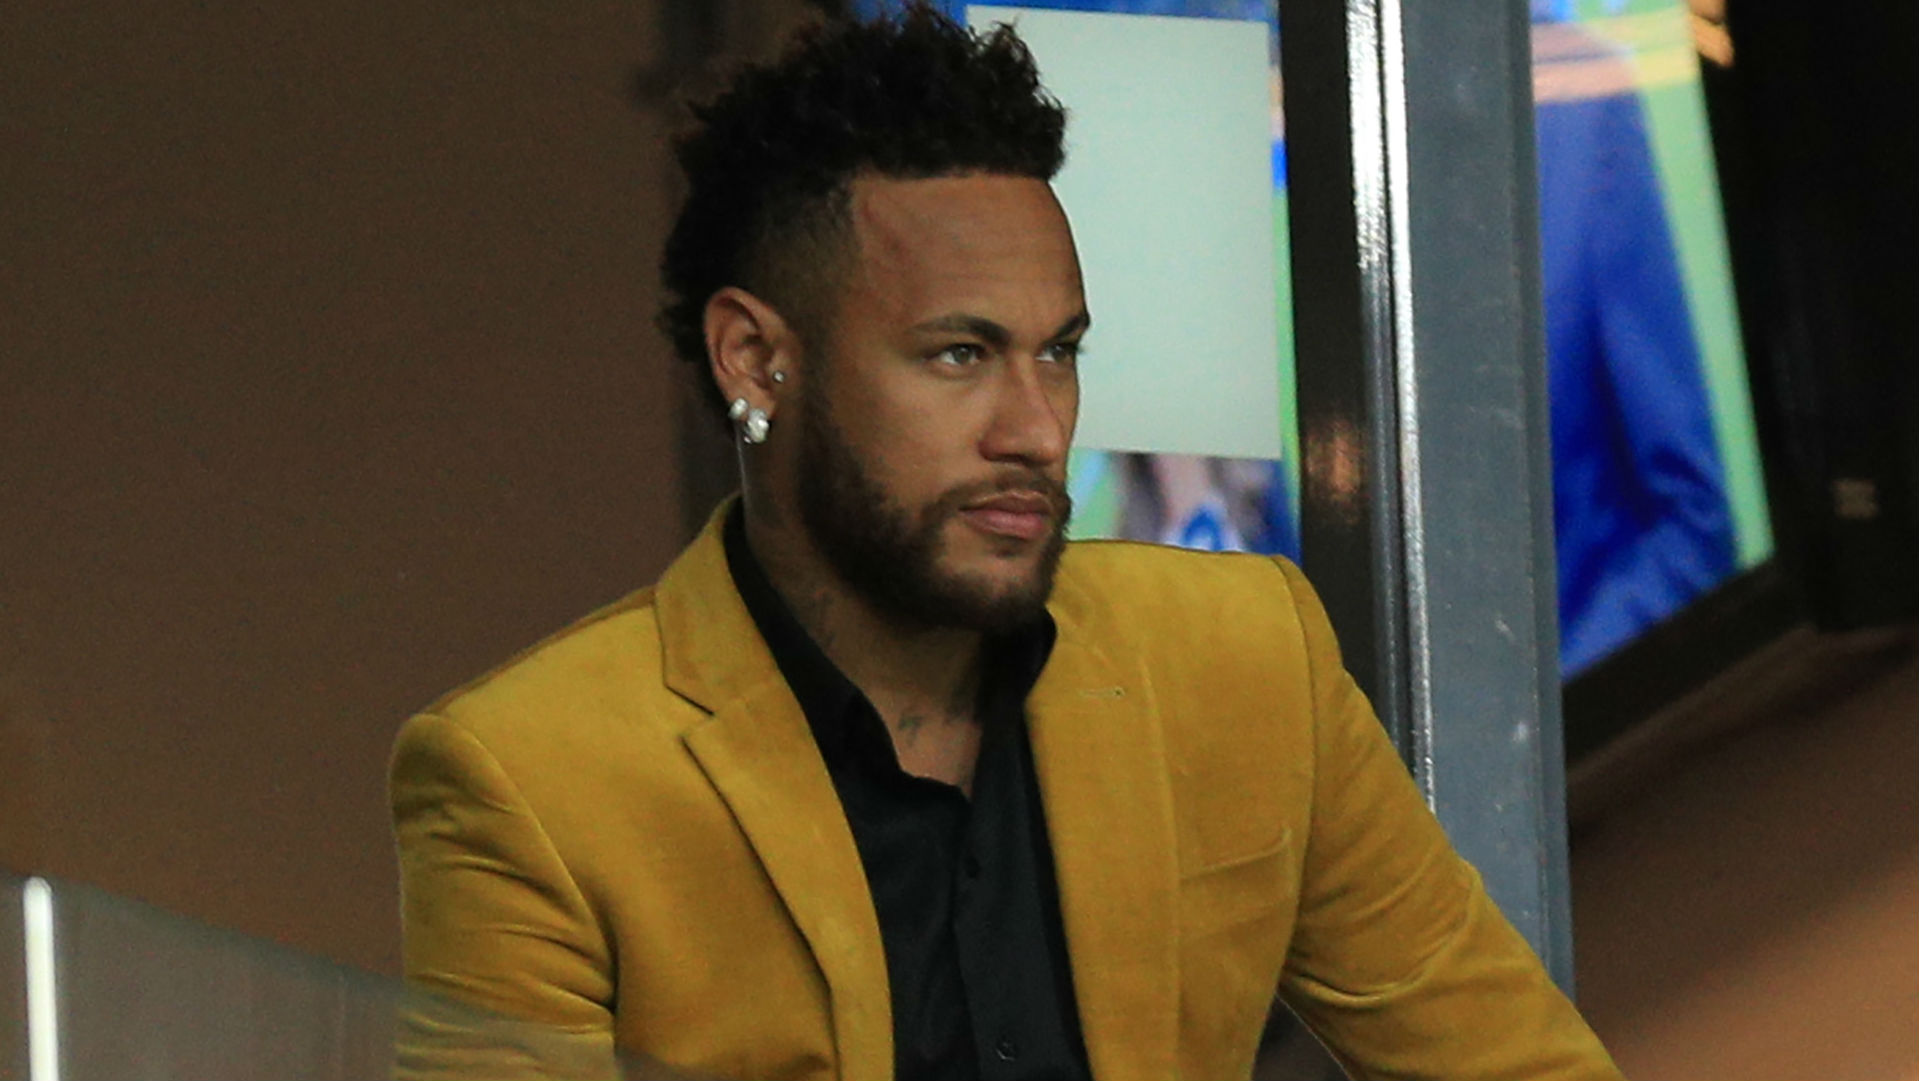 Paris Saint-Germain set a deadline for Neymar's future